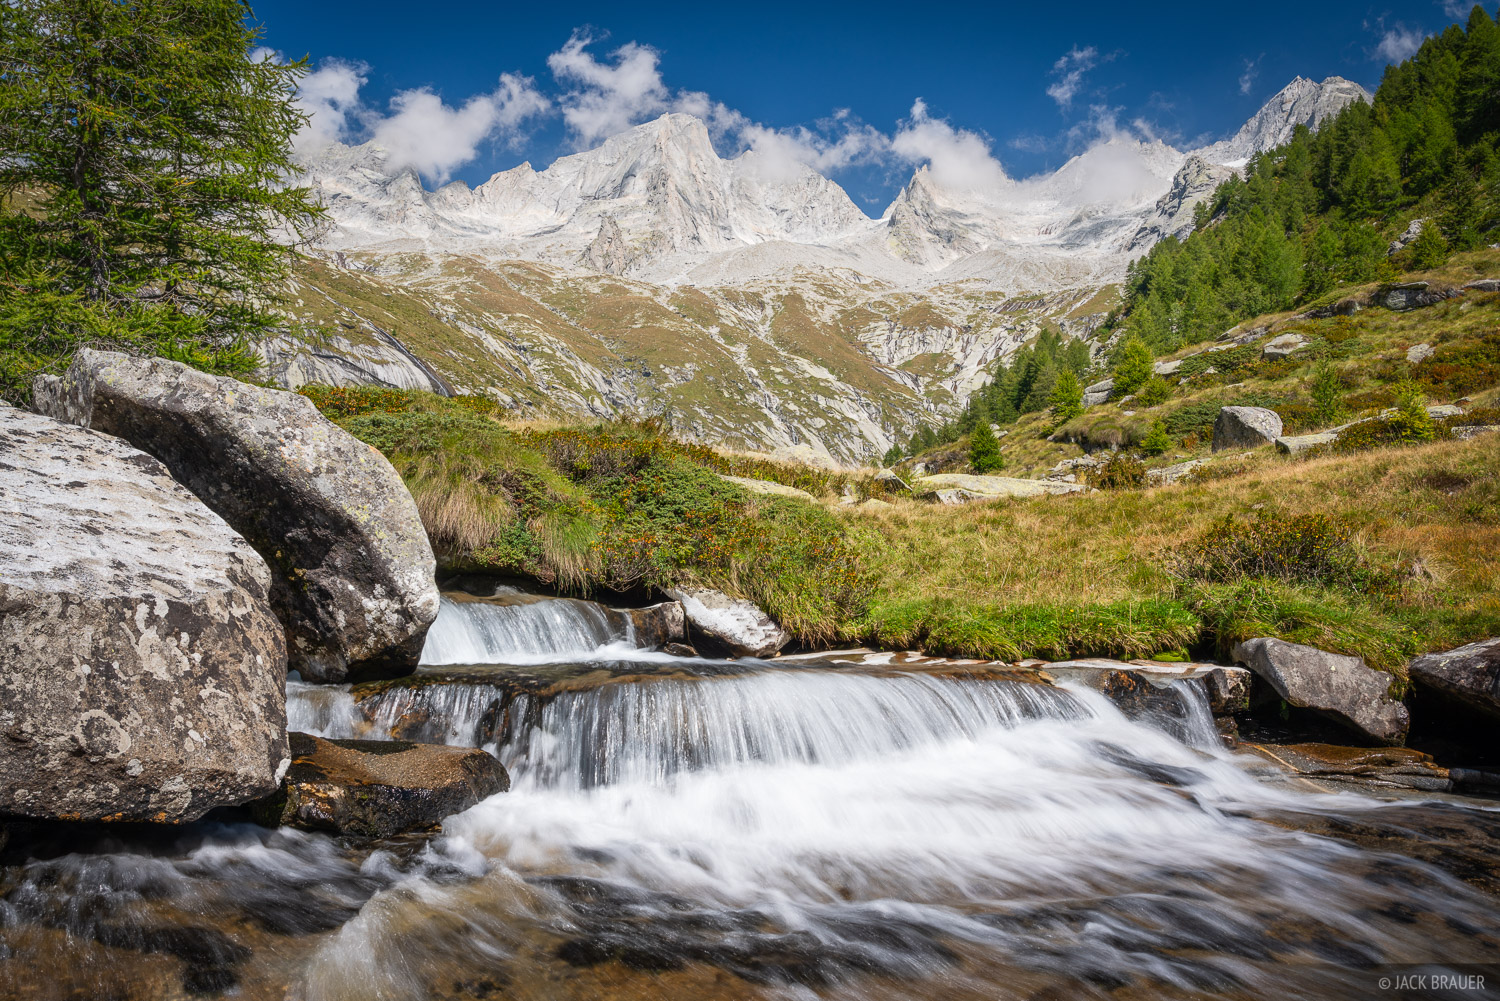 Italy, Pizzo Cengalo, Rhaetian Alps, Val Masino, Valle Porcellizzo, waterfall, photo